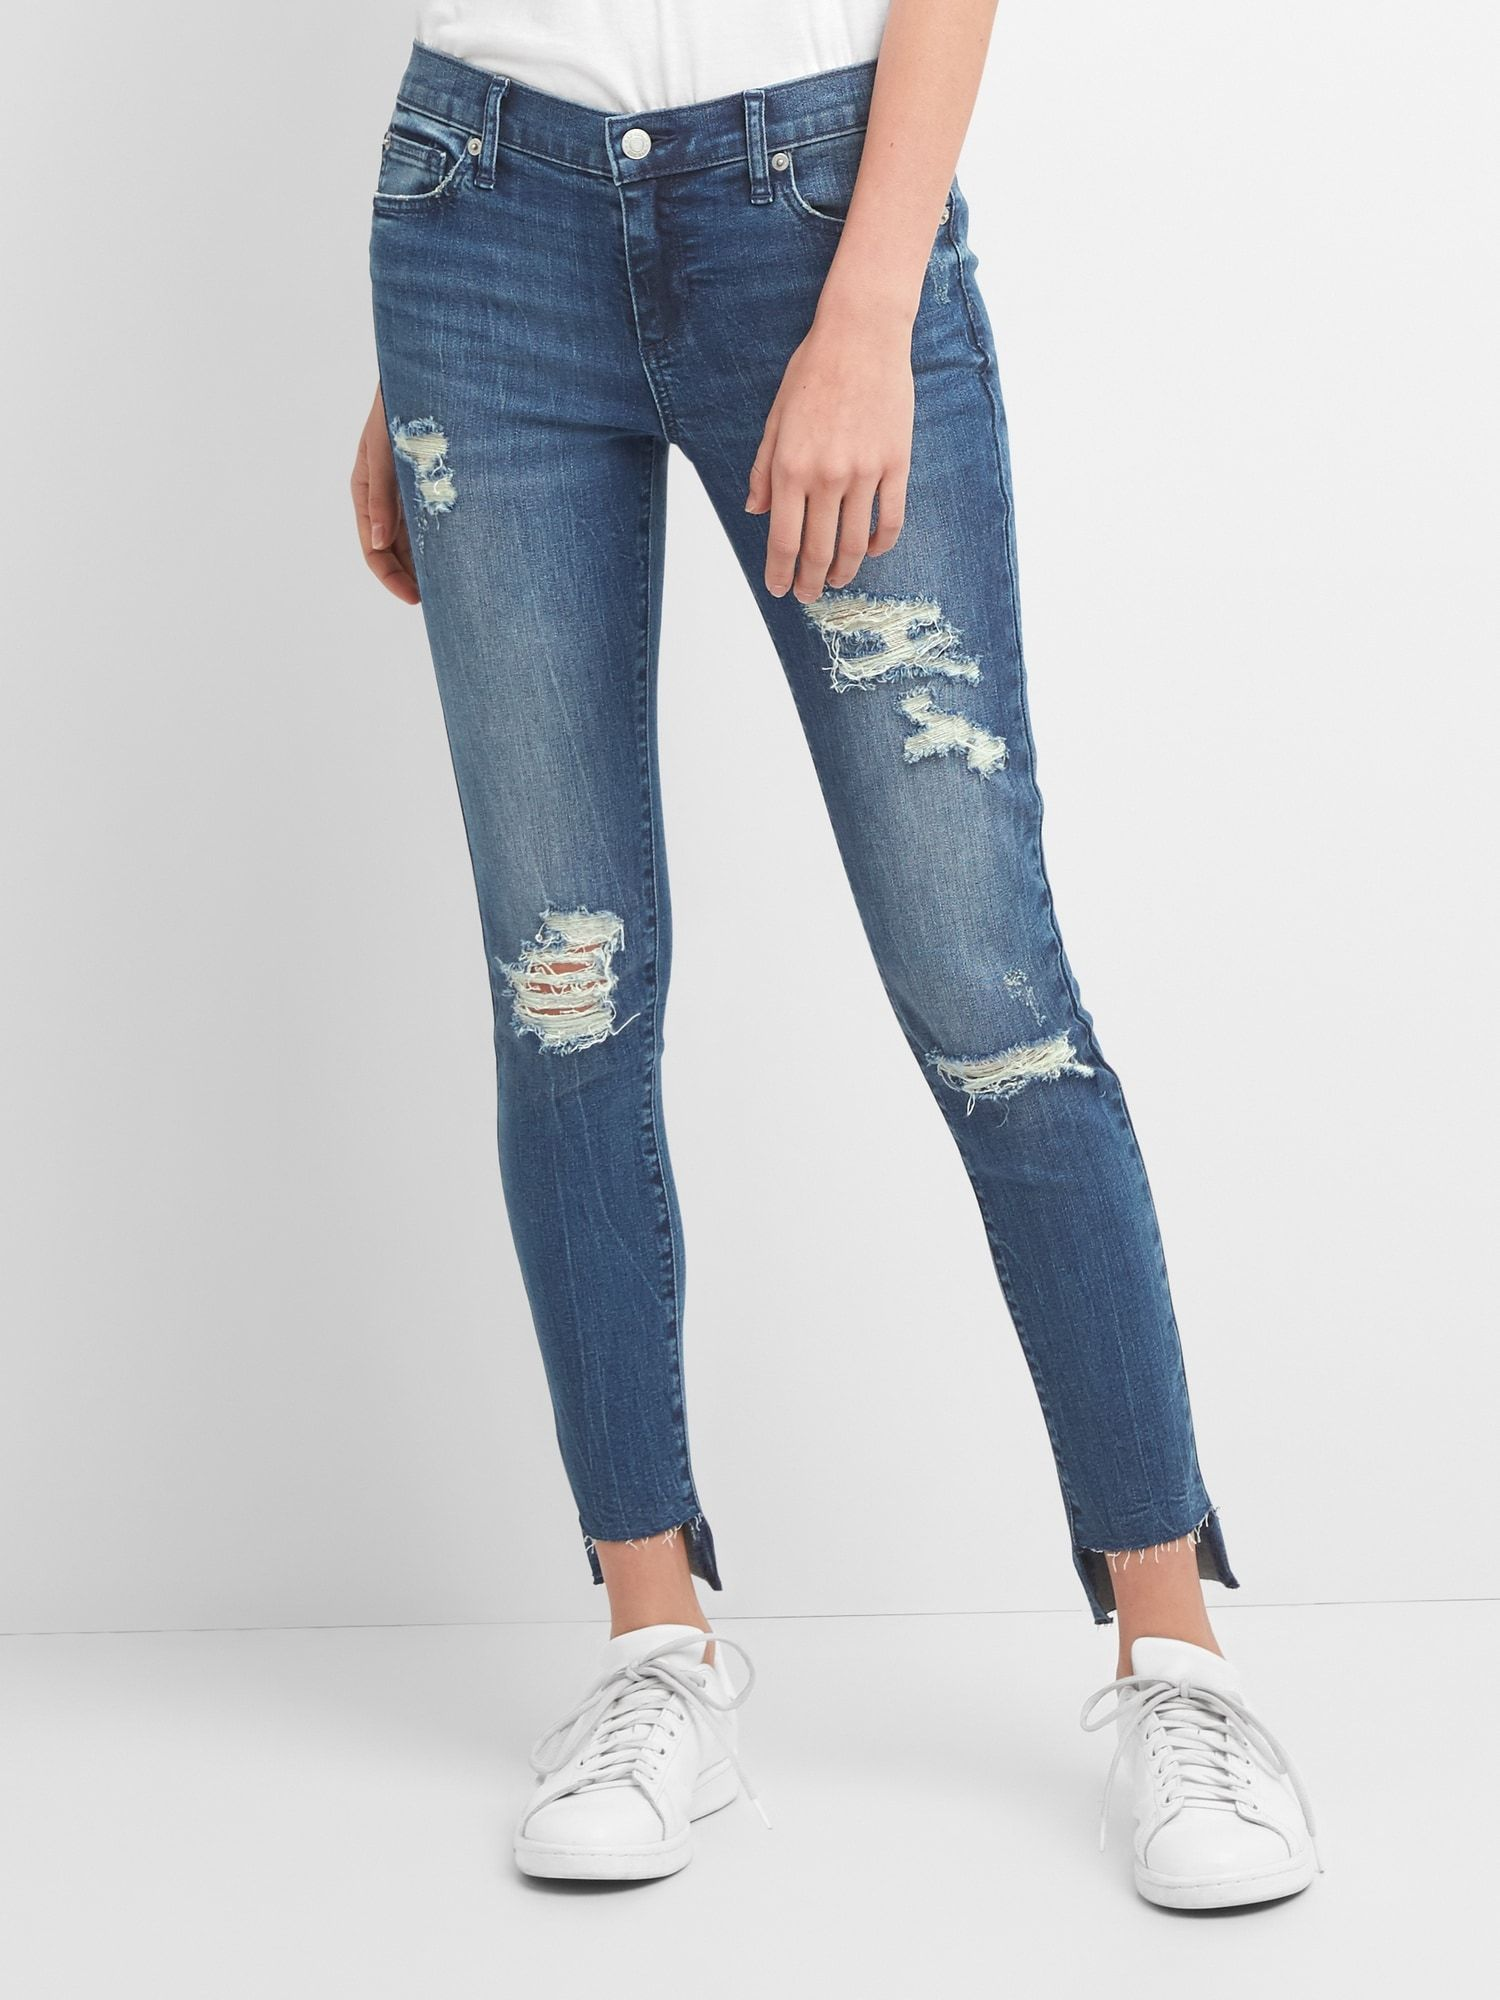 Washwell Low Rise True Skinny Jeans with Destruction   Gap